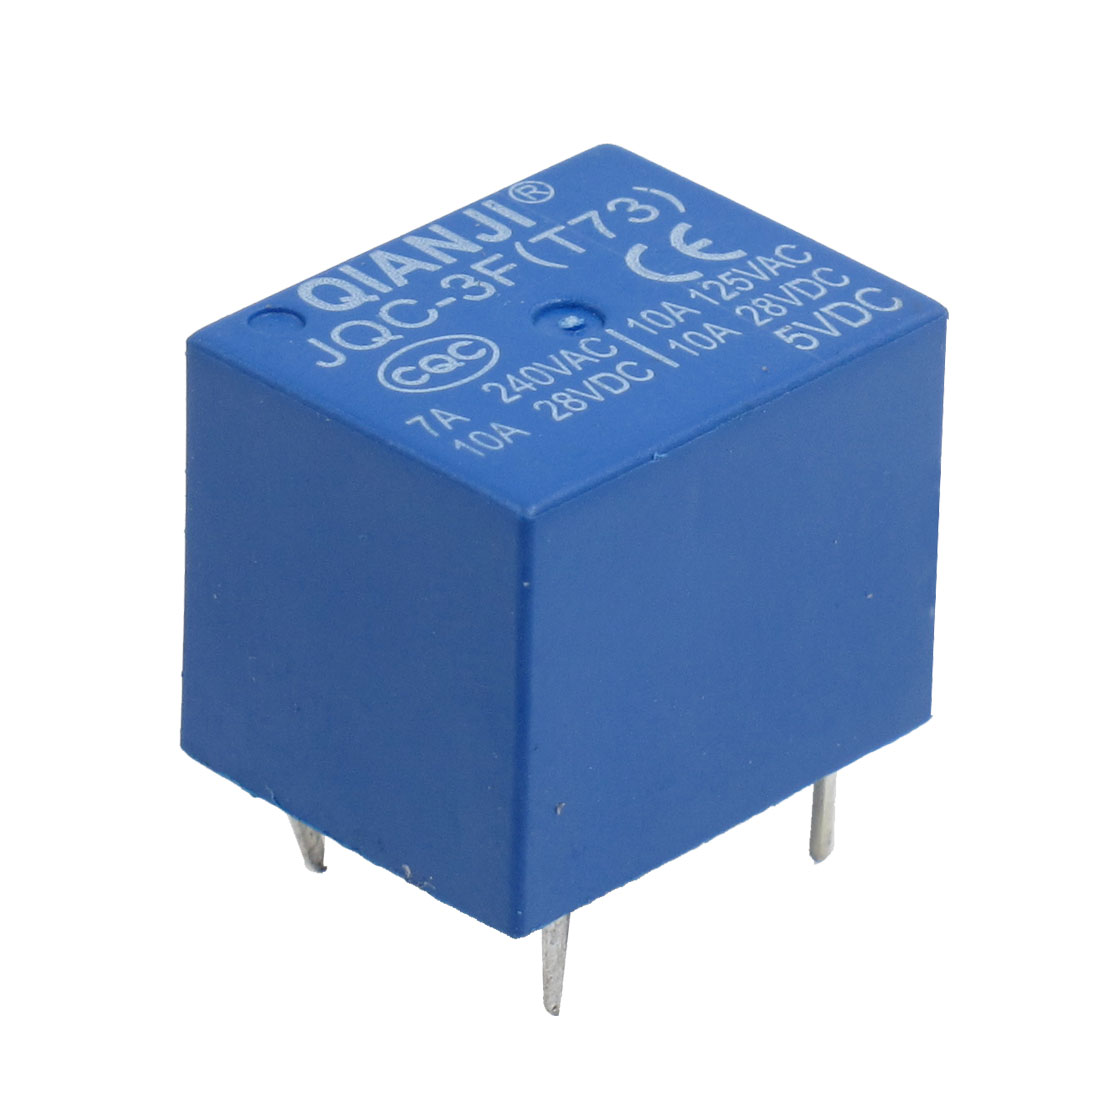 Joc 3ft73 Dc 5v Coil Electromagnetic Power Relay 5 Pin Electrical For Dummies